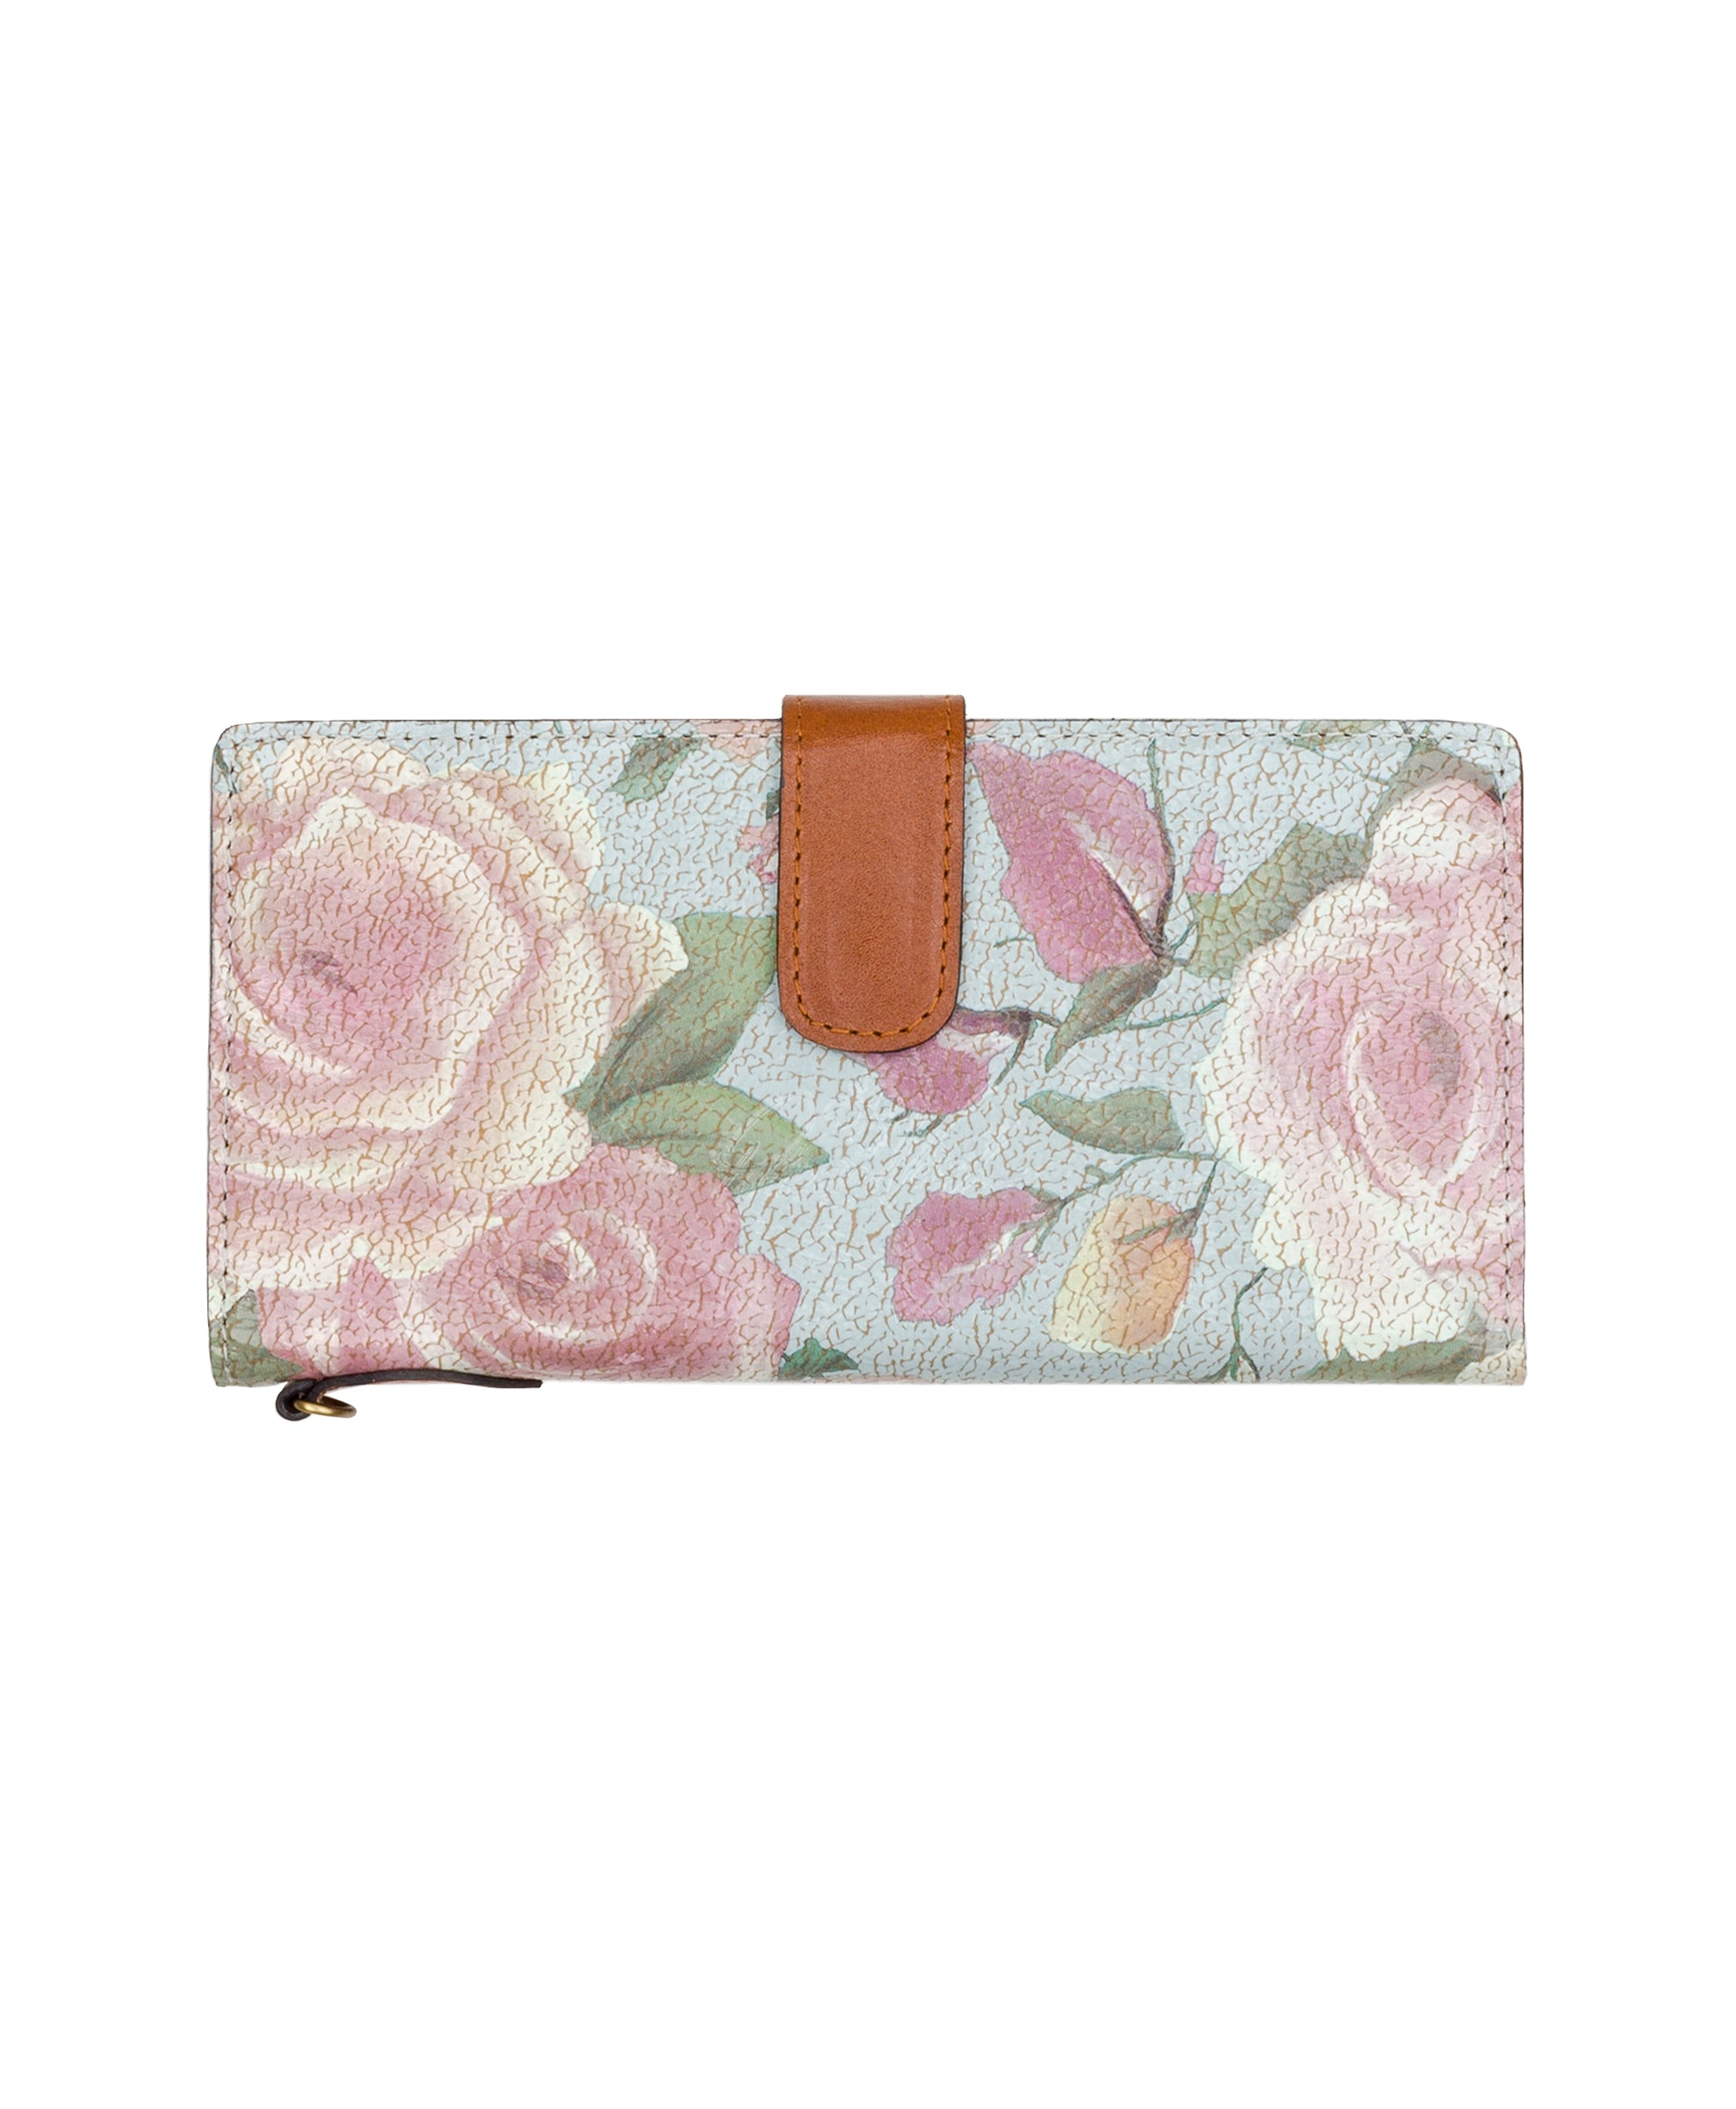 Valentia II Snap Wristlet - Crackled Rose 2